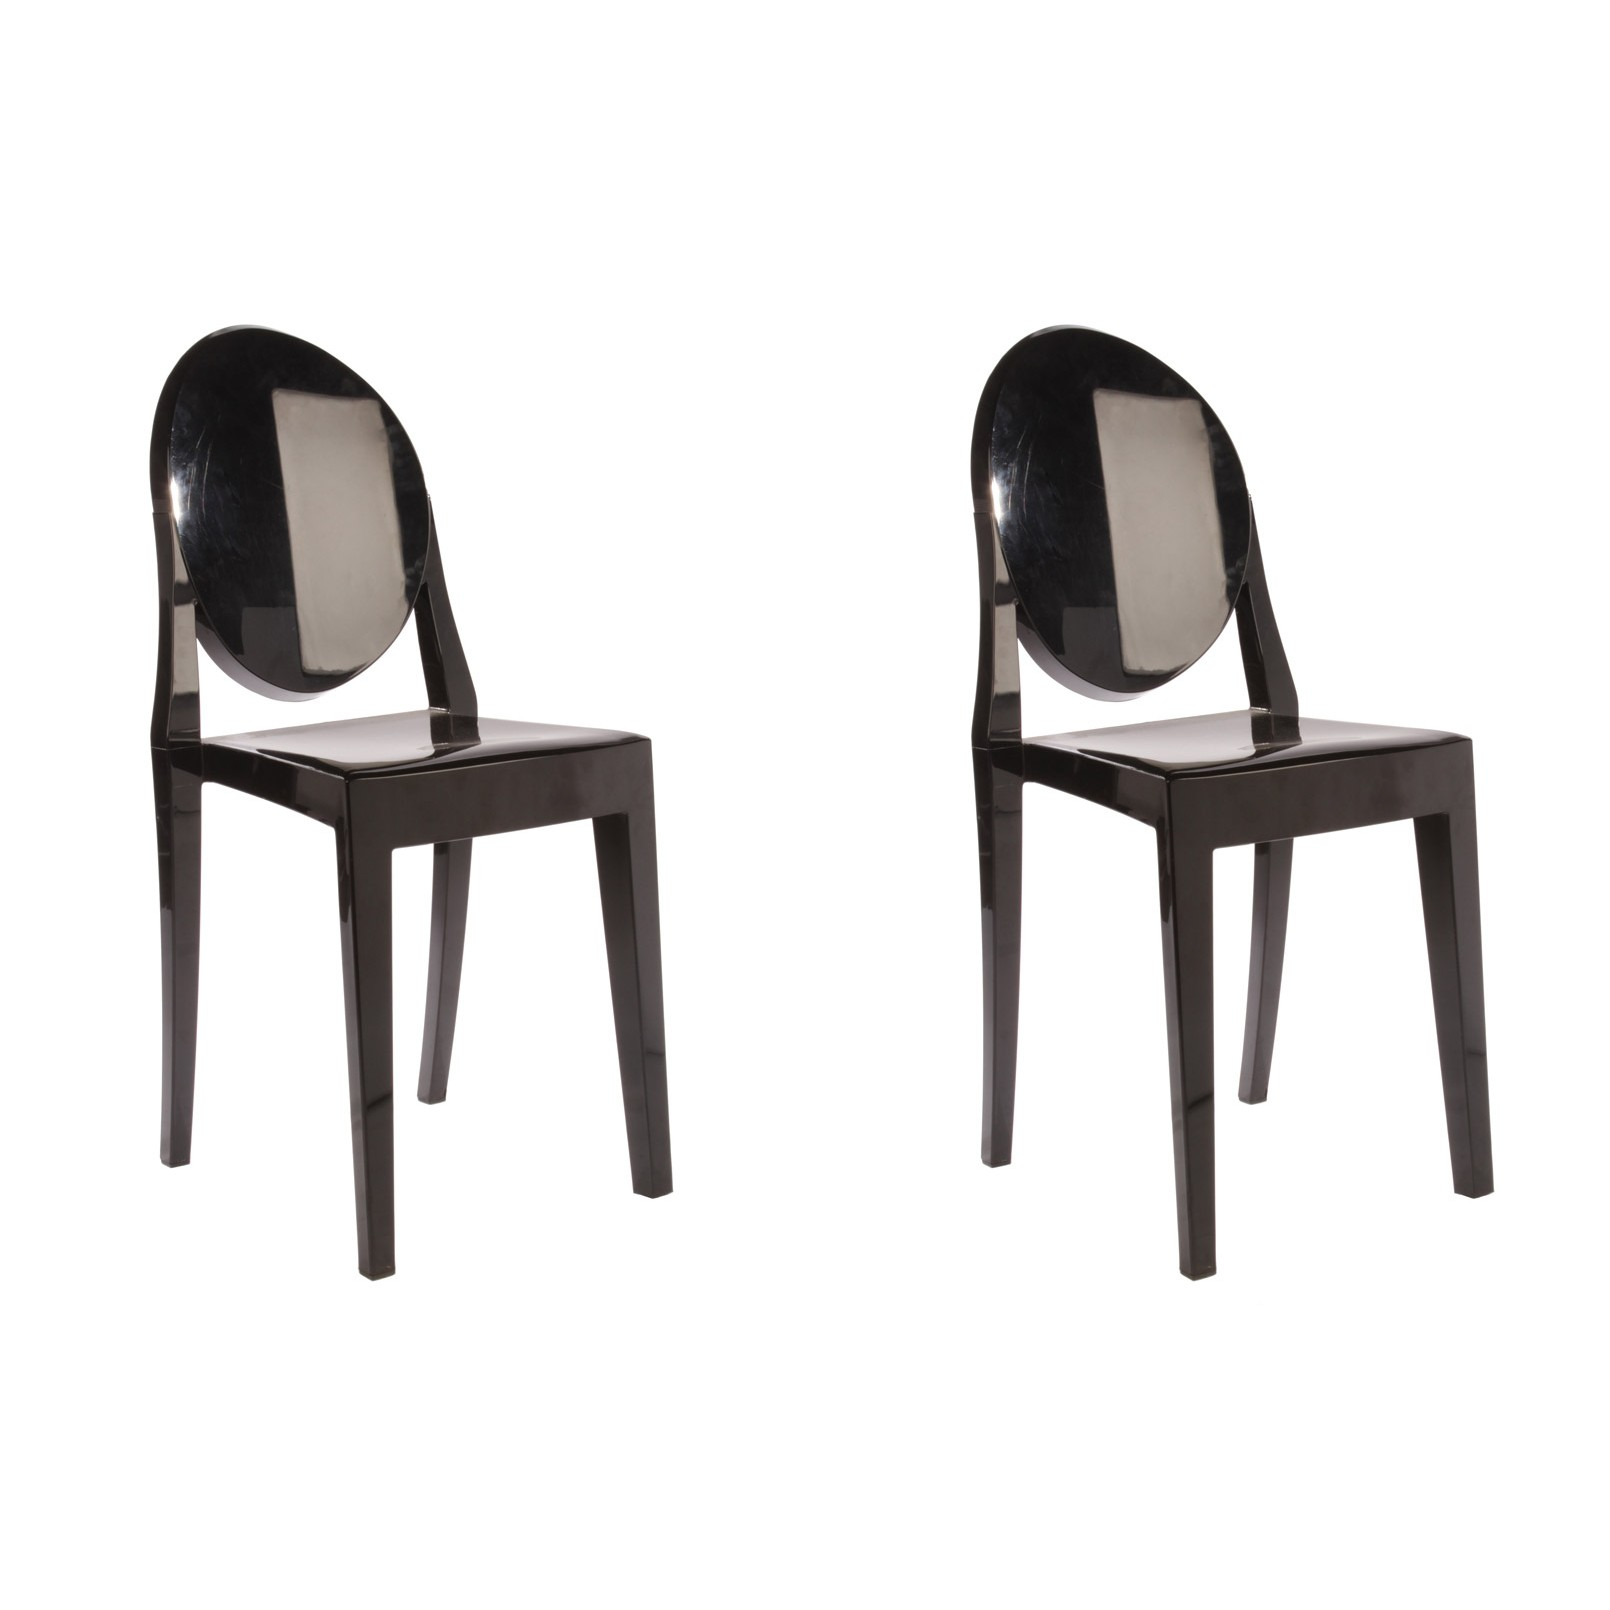 victoria ghost chair motor chairs elderly set of 2 style dining black color